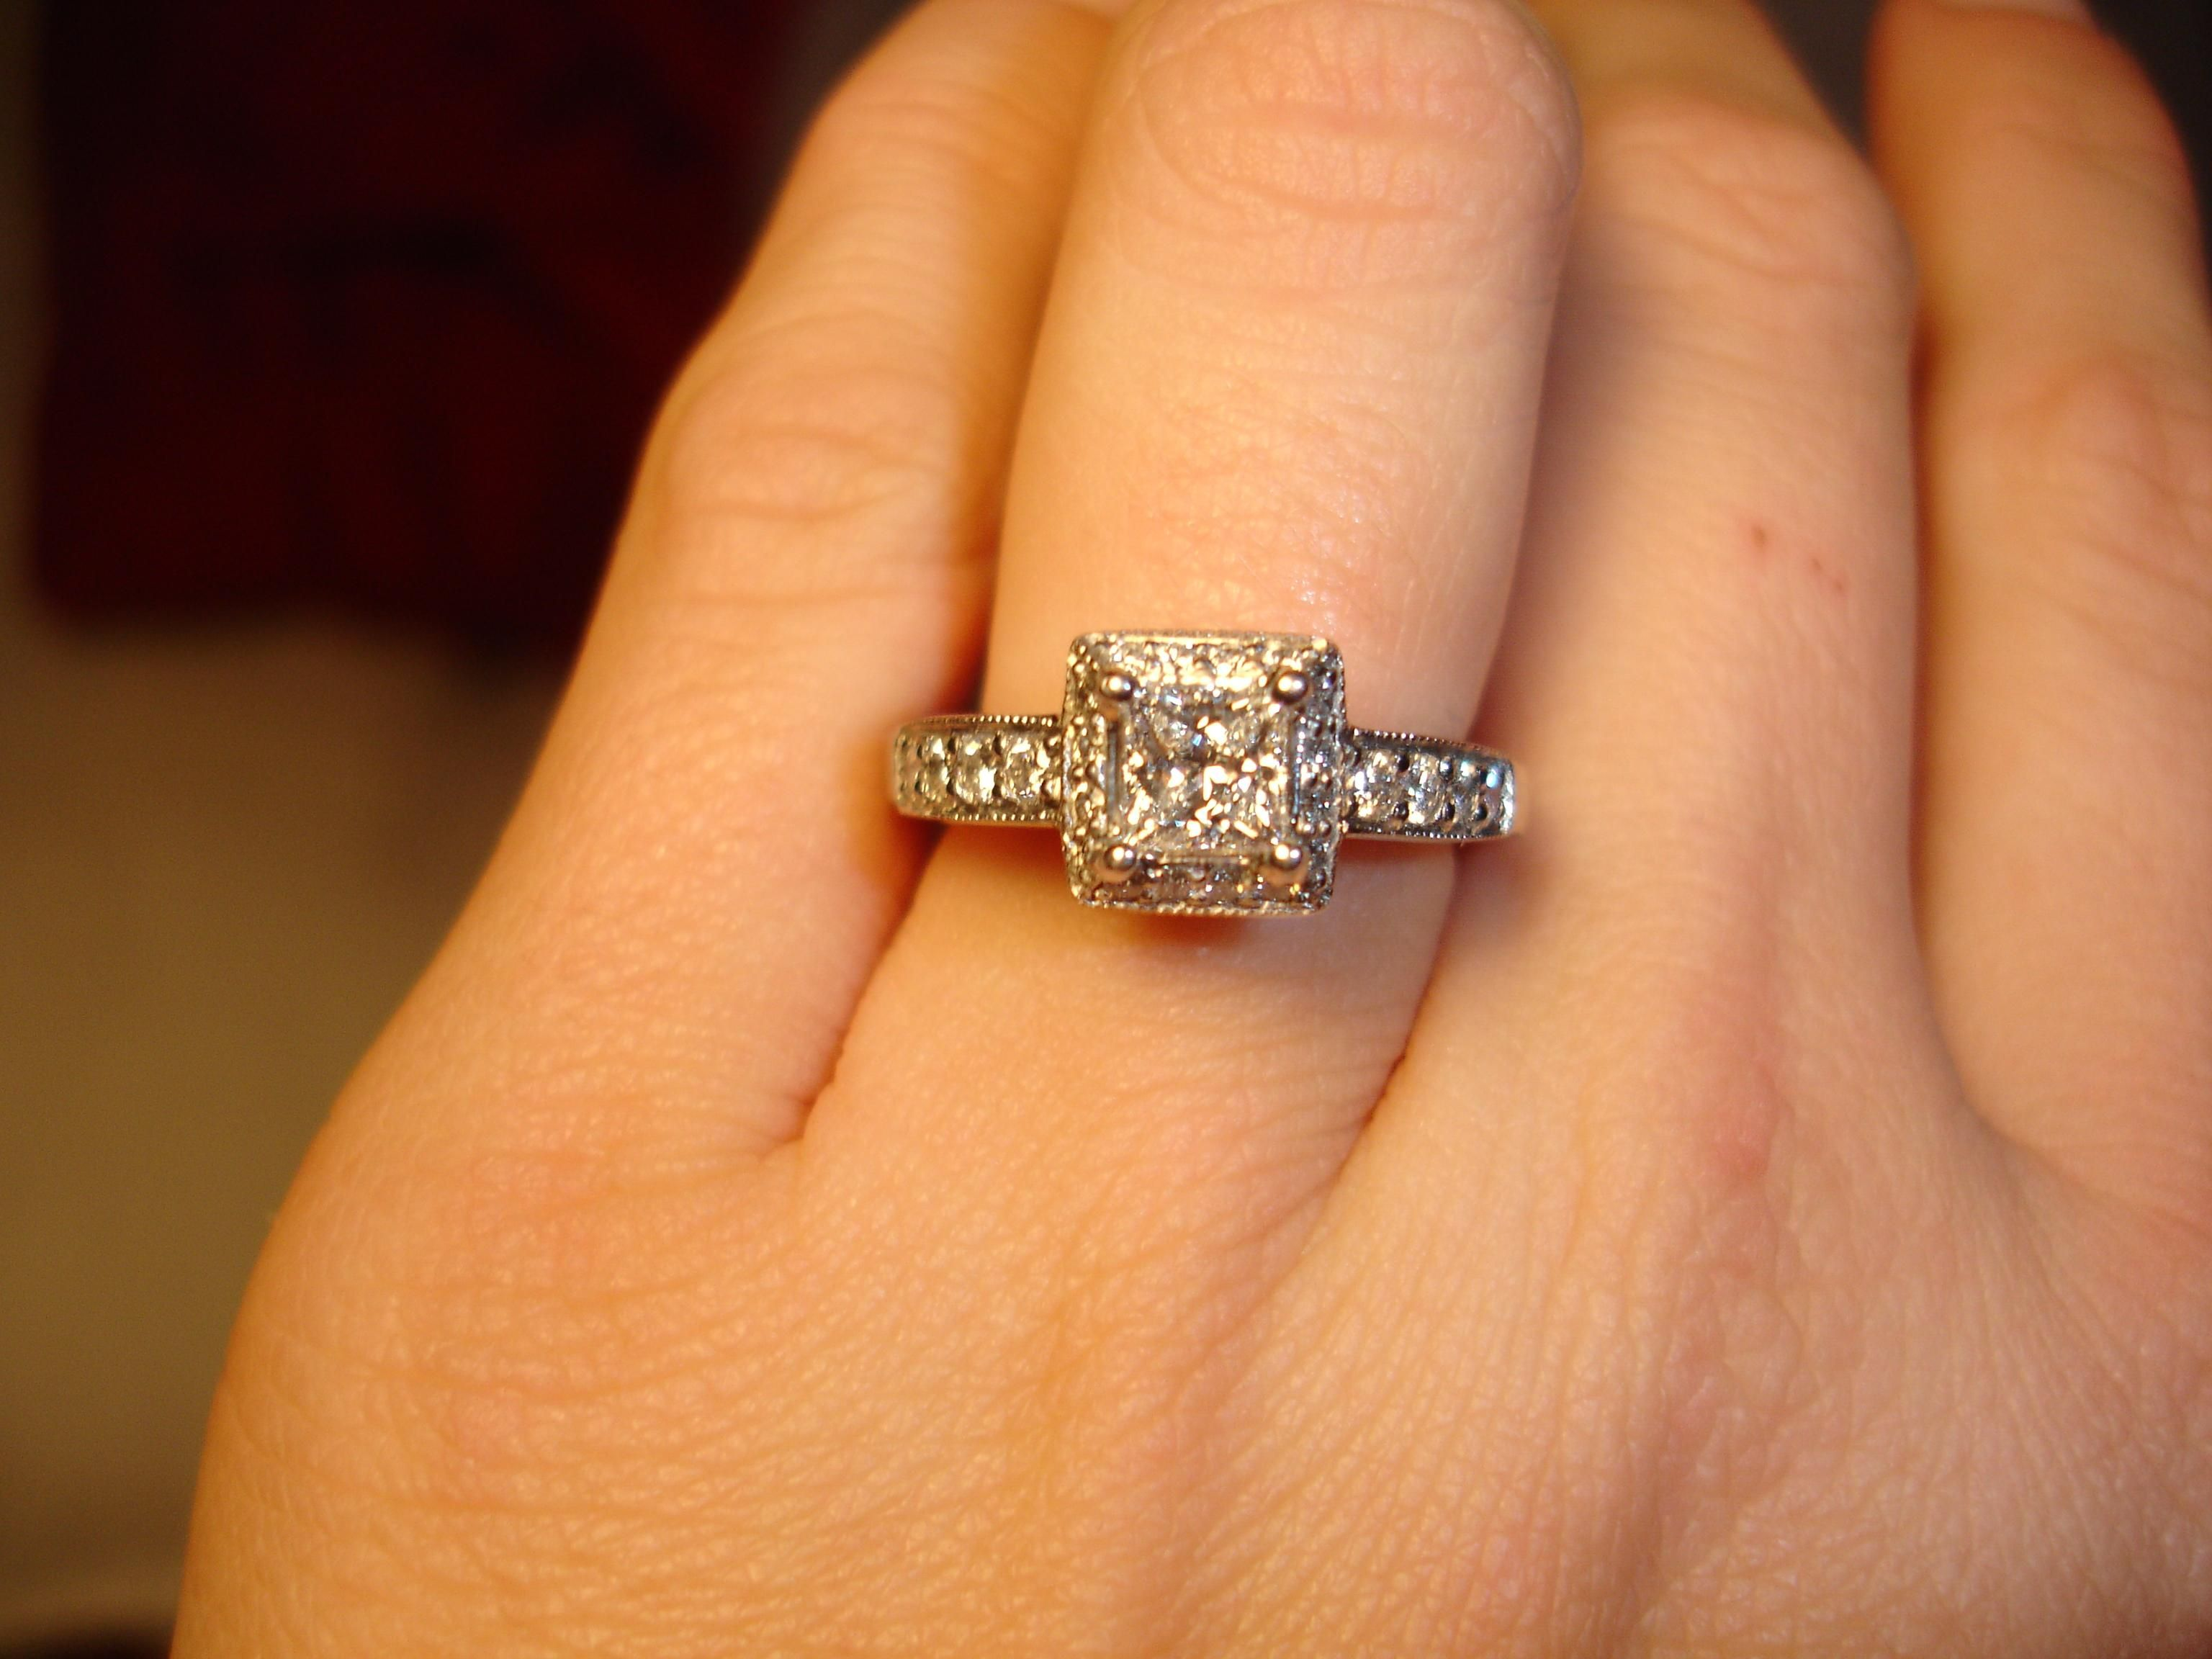 Big Engagement Rings On Peoples Hands 12 | Engagement Rings ...